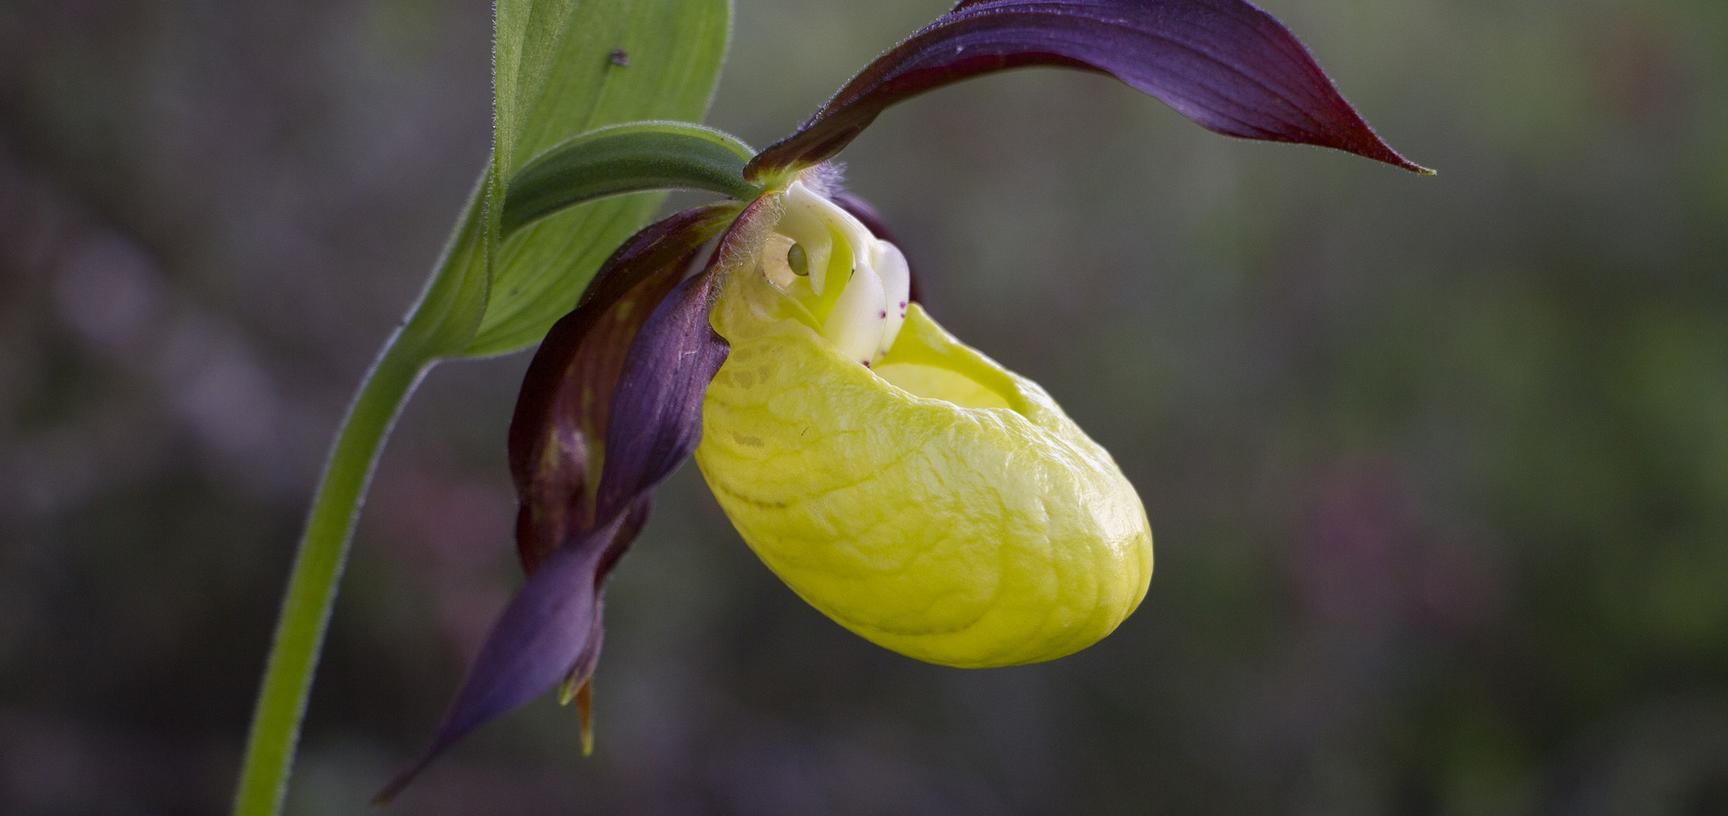 Slipper orchid image by Tatjana Posavec from Pixabay